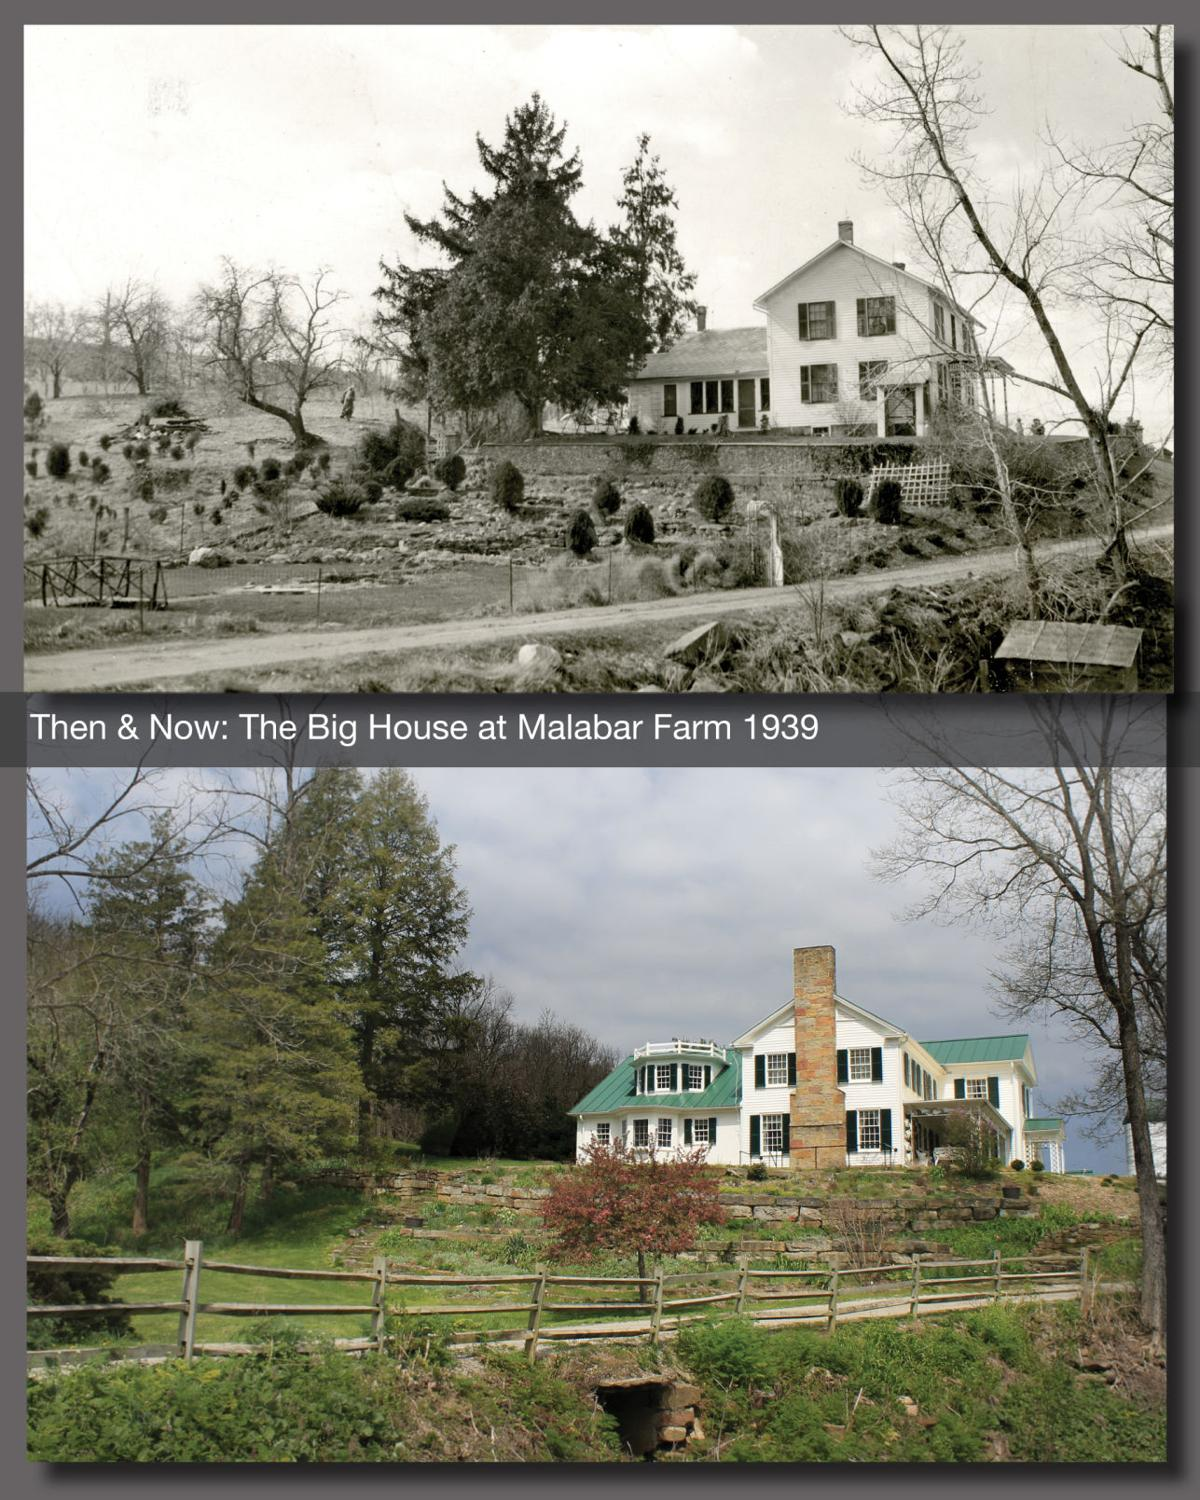 Then & Now: The Big House at Malabar Farm 1939